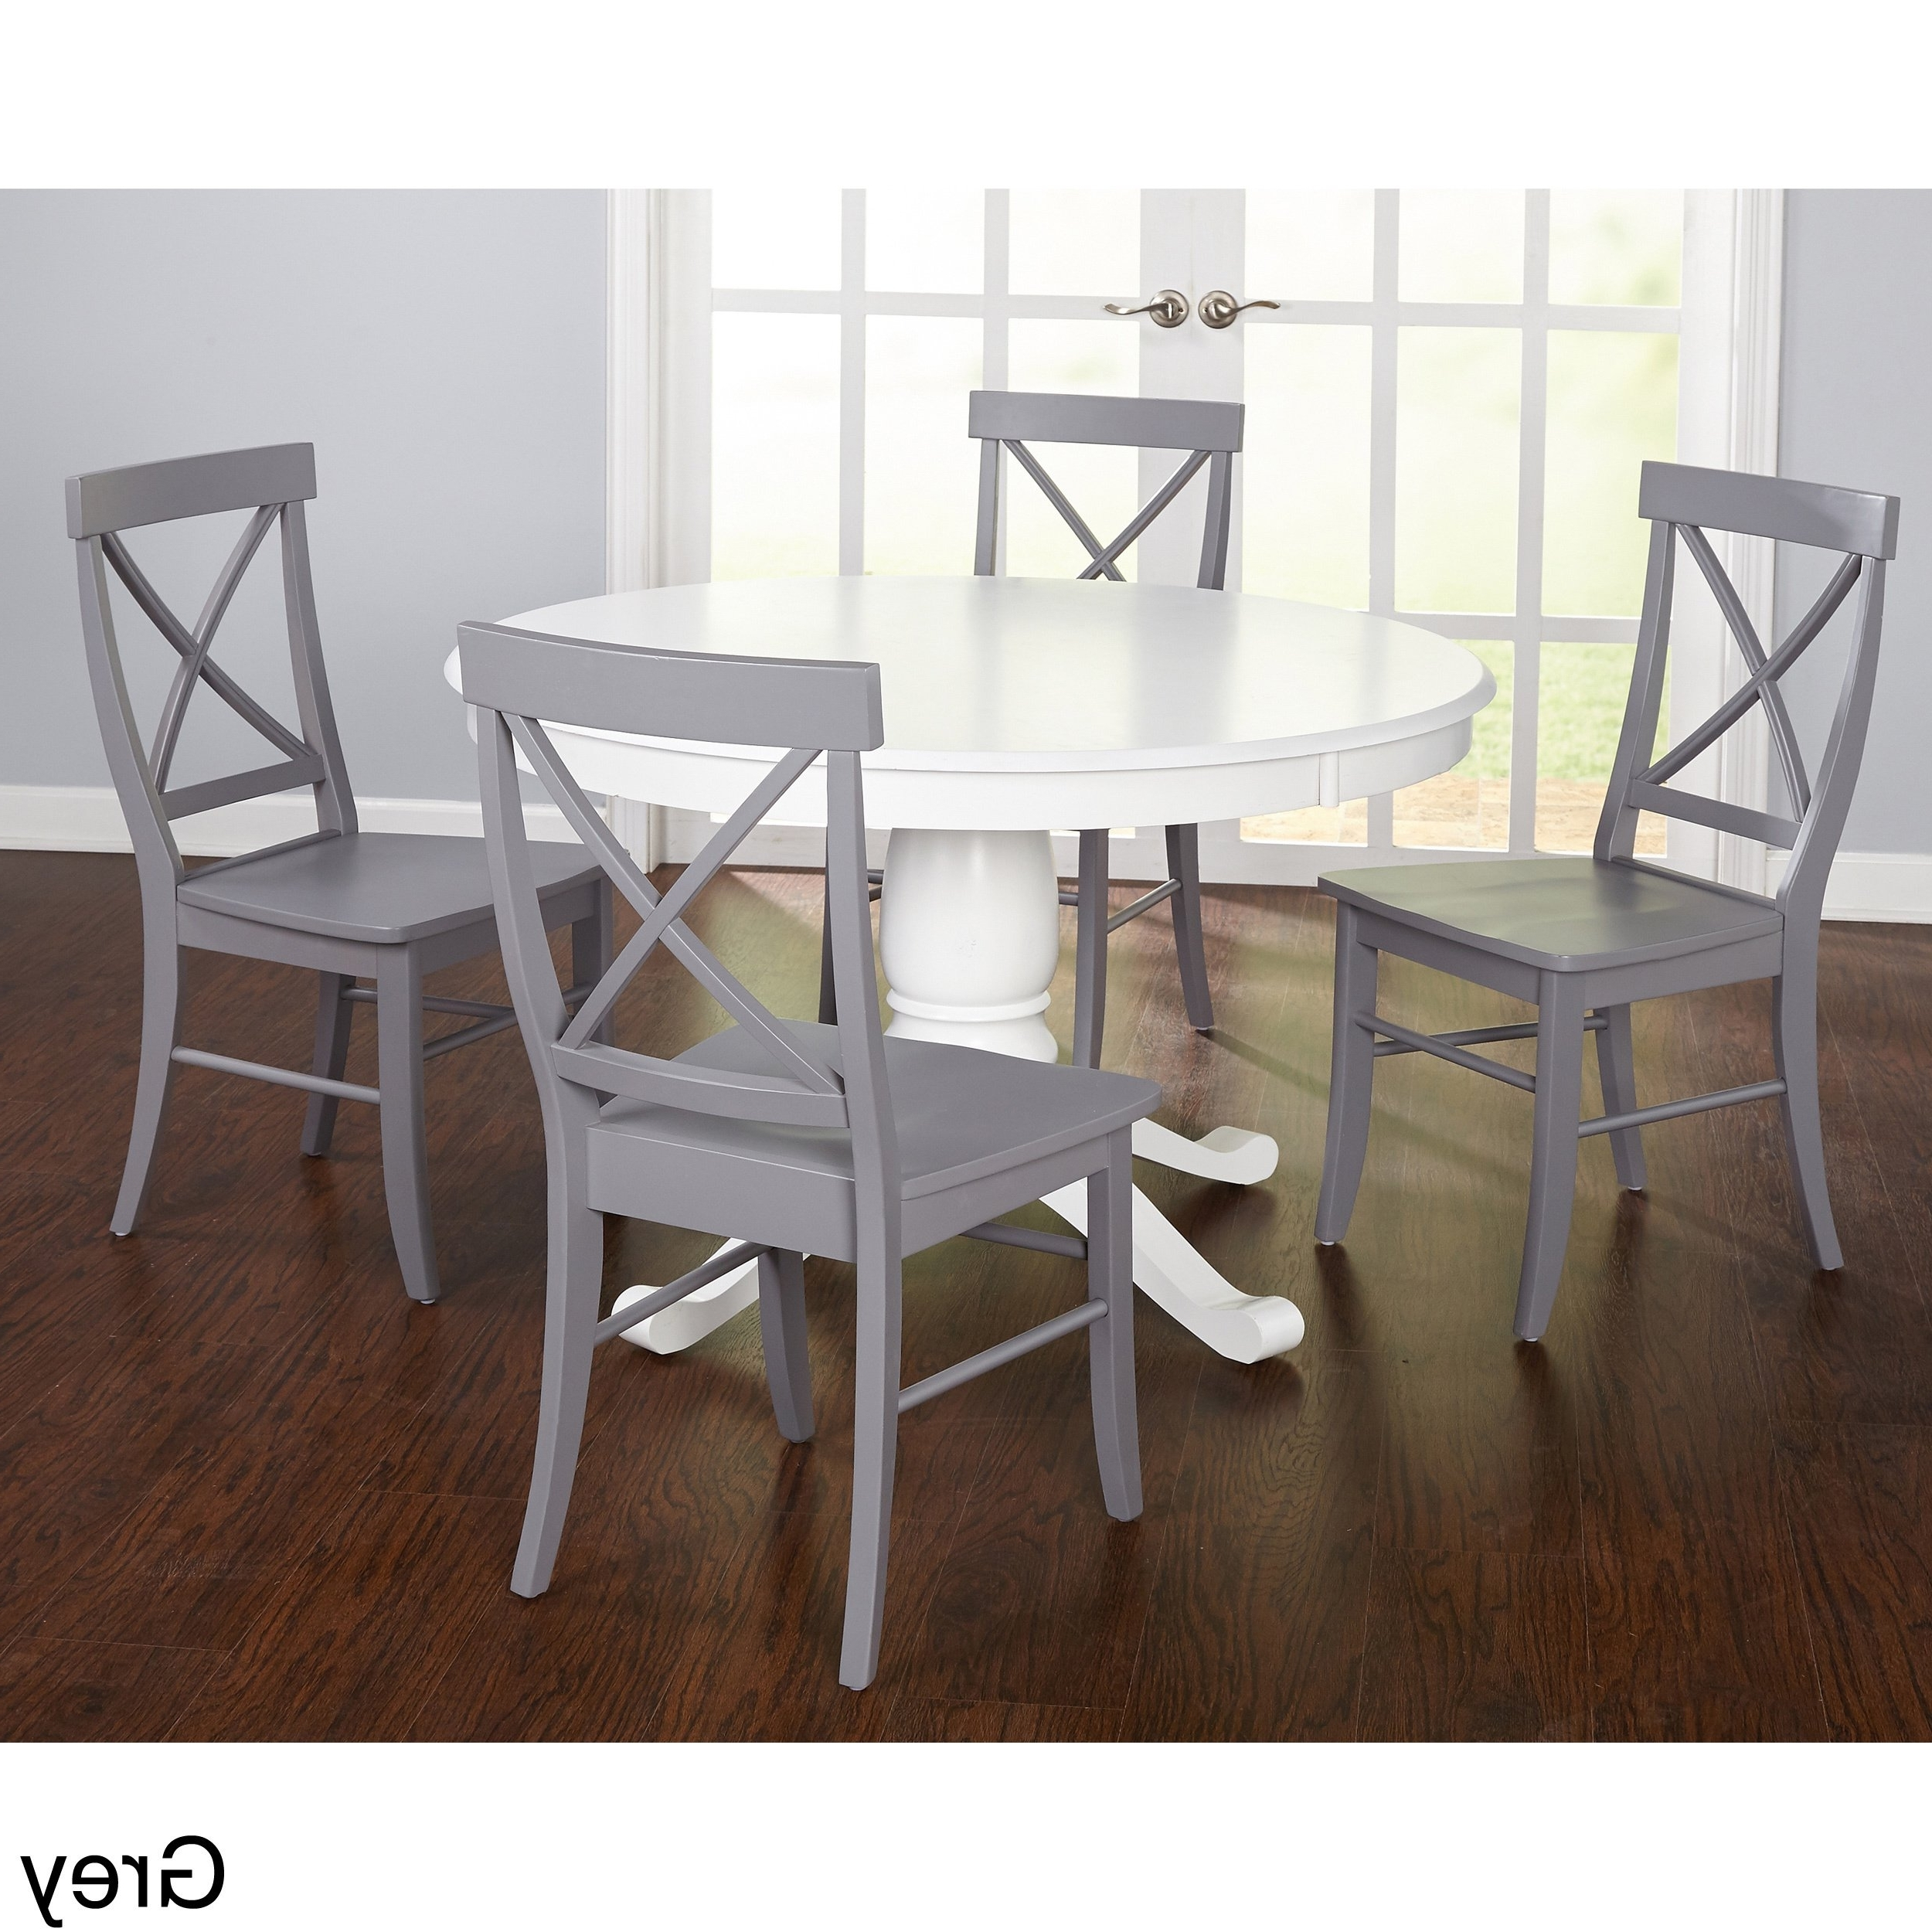 Fashionable Shop Simple Living 5 Piece Dawson Dining Set – Free Shipping Today Throughout Dawson Dining Tables (View 20 of 25)